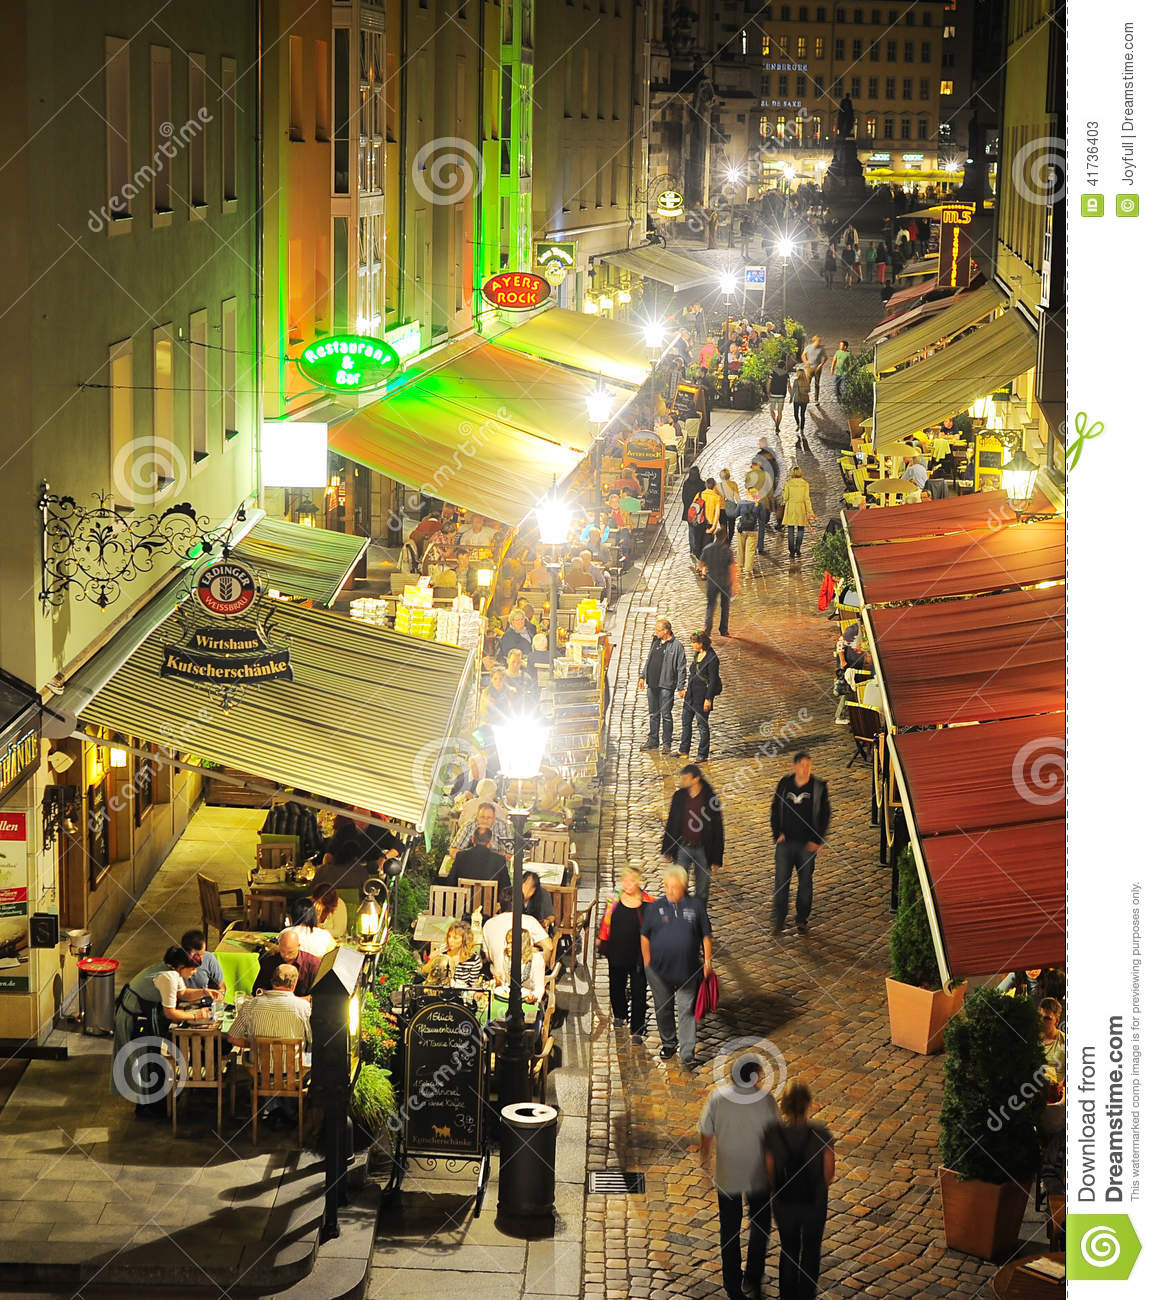 Munzgasse in Dresden editorial stock photo. Image of restaurant ...